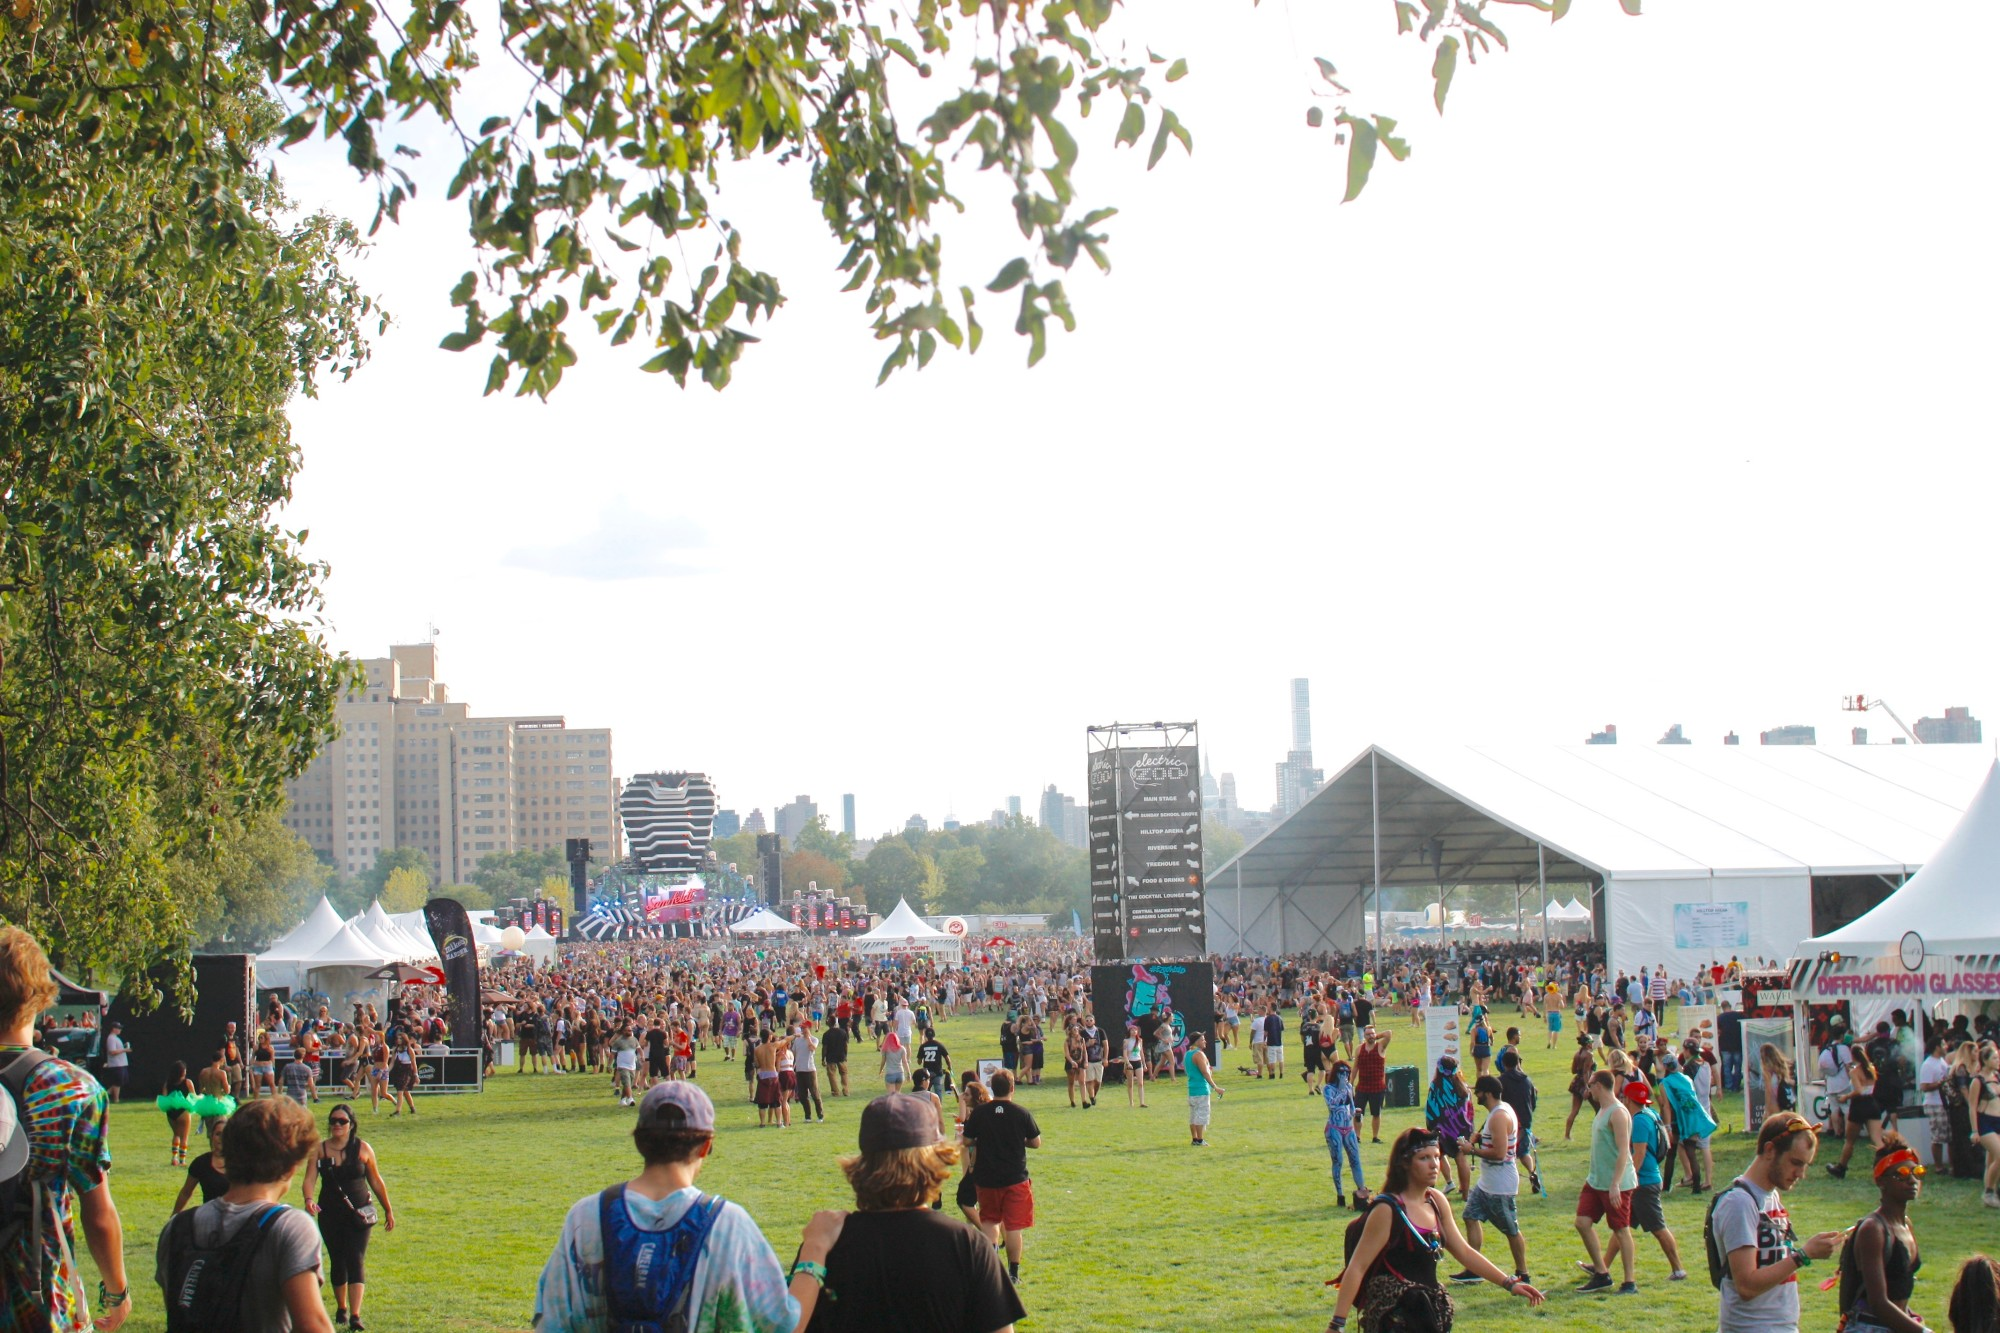 [FESTIVAL RECAP] Electric Zoo is a Rave and that's OK